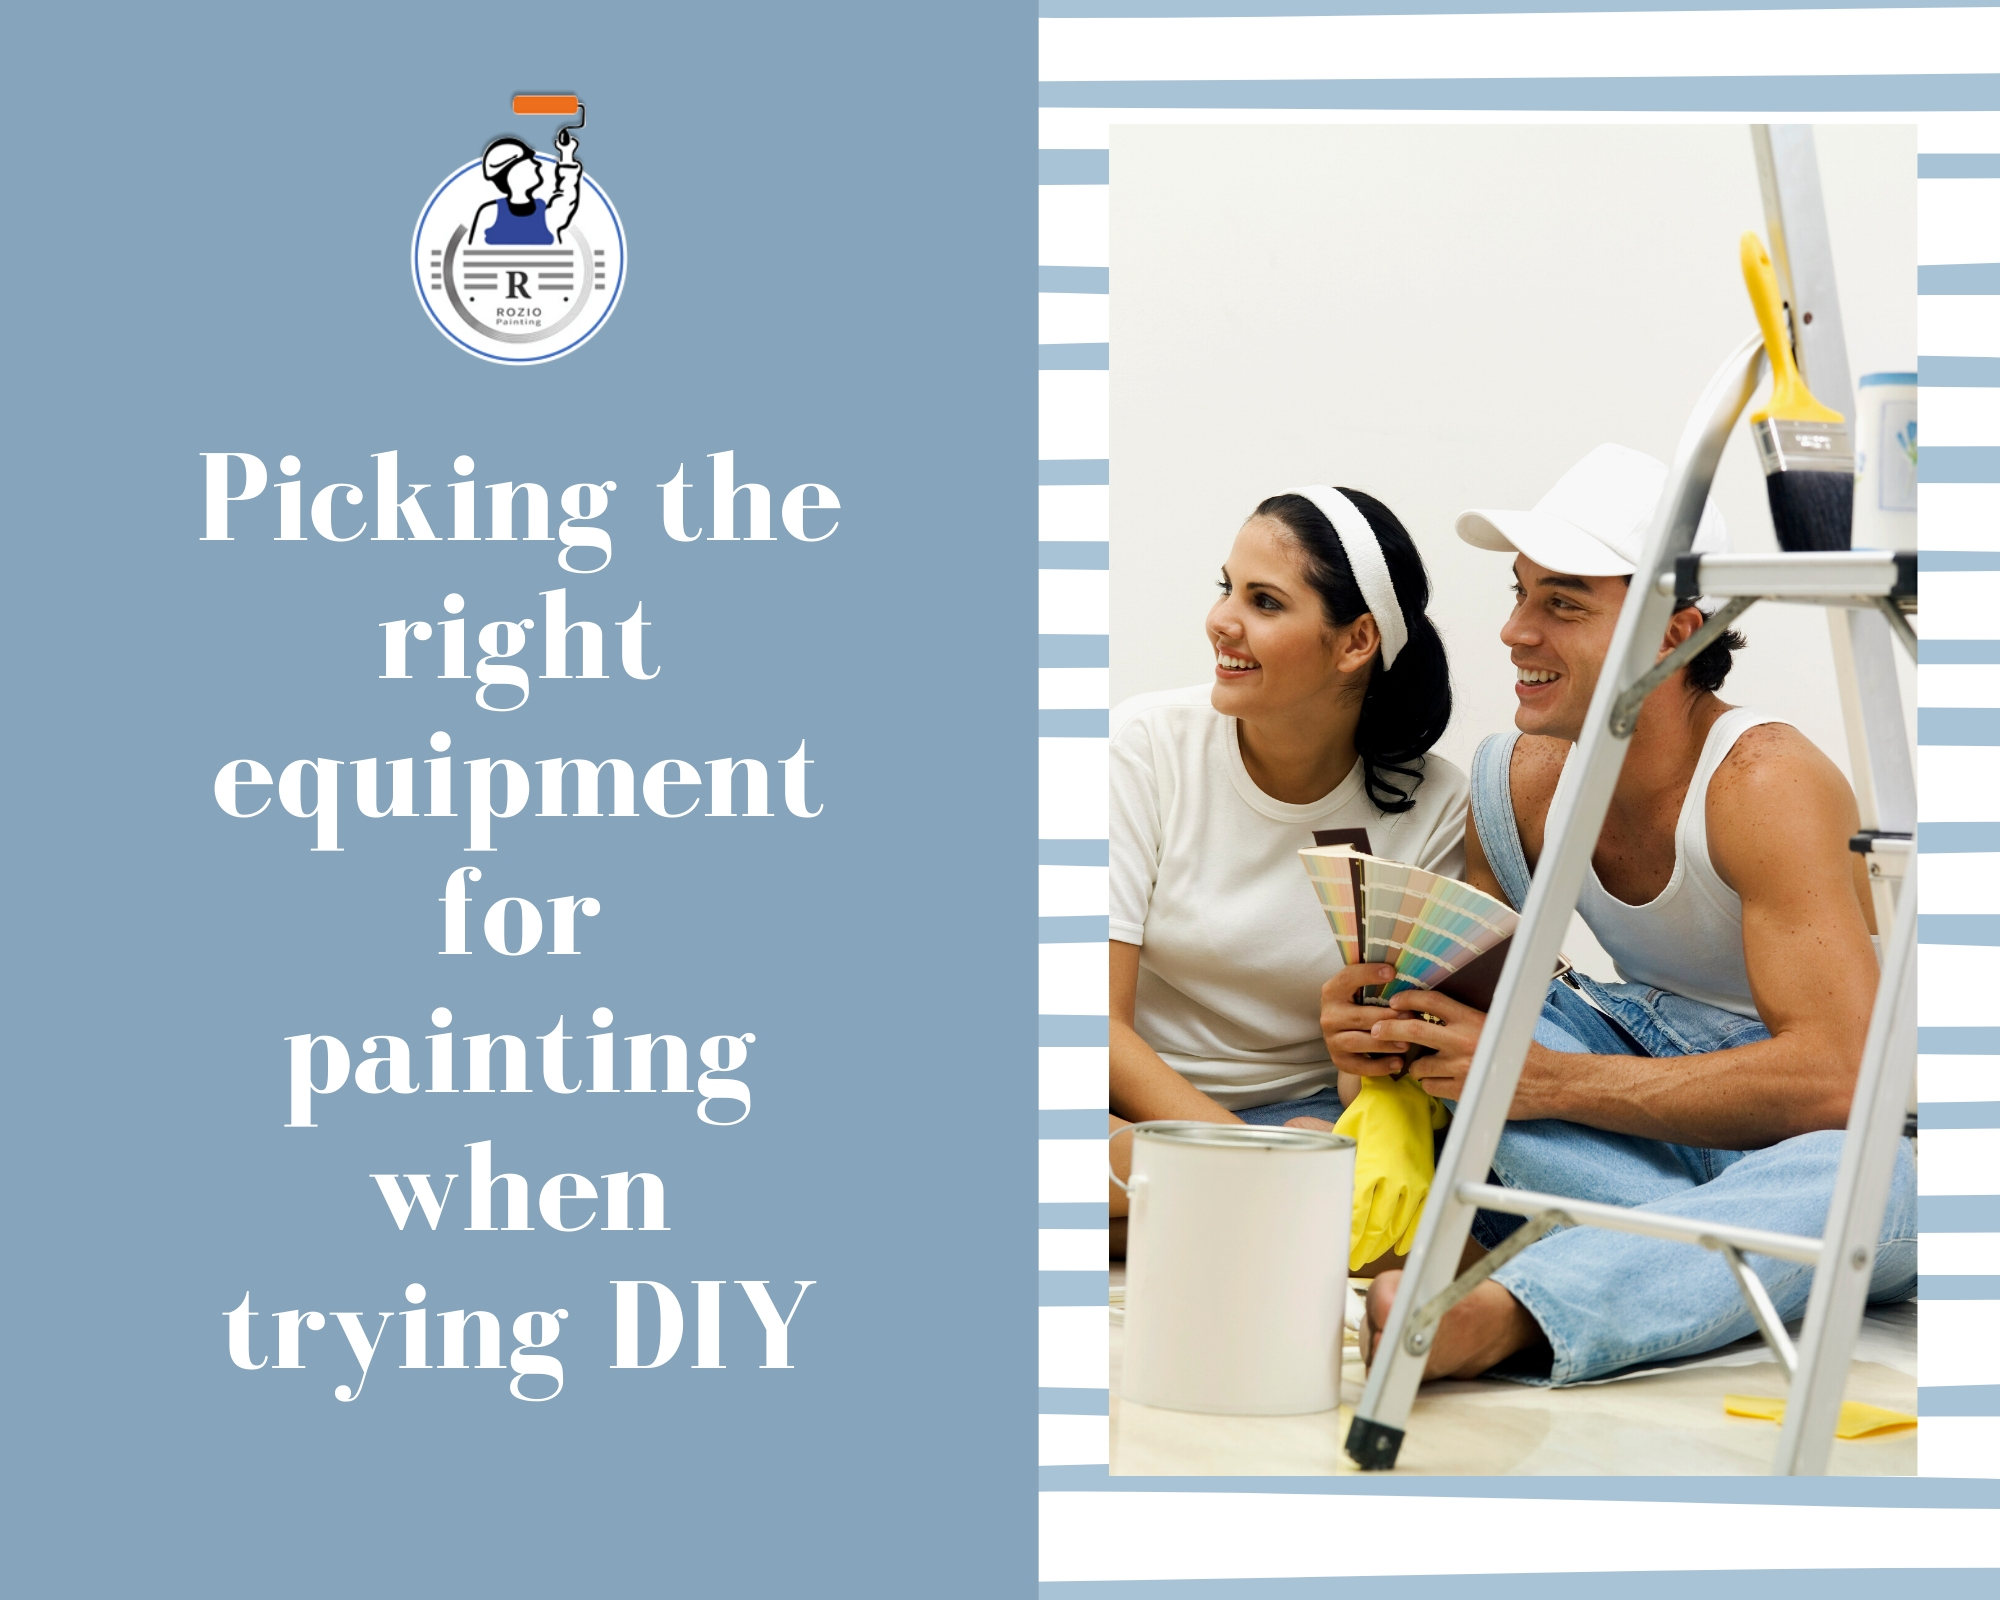 Picking the right equipment for painting when trying DIY